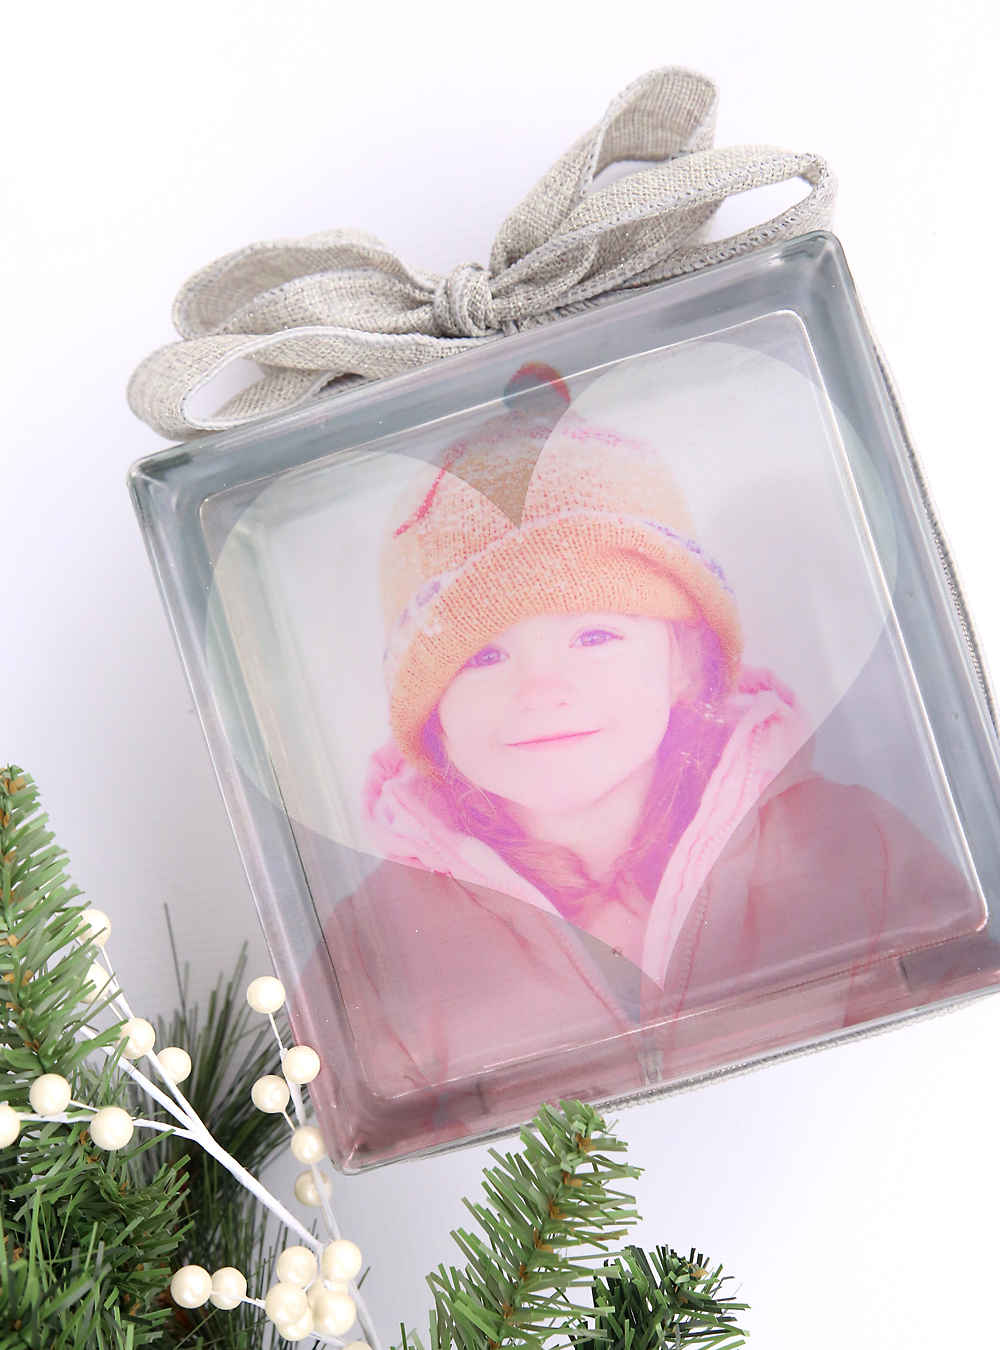 Super easy way to make your own glass pictures! Glass photo block DIY tutorial.